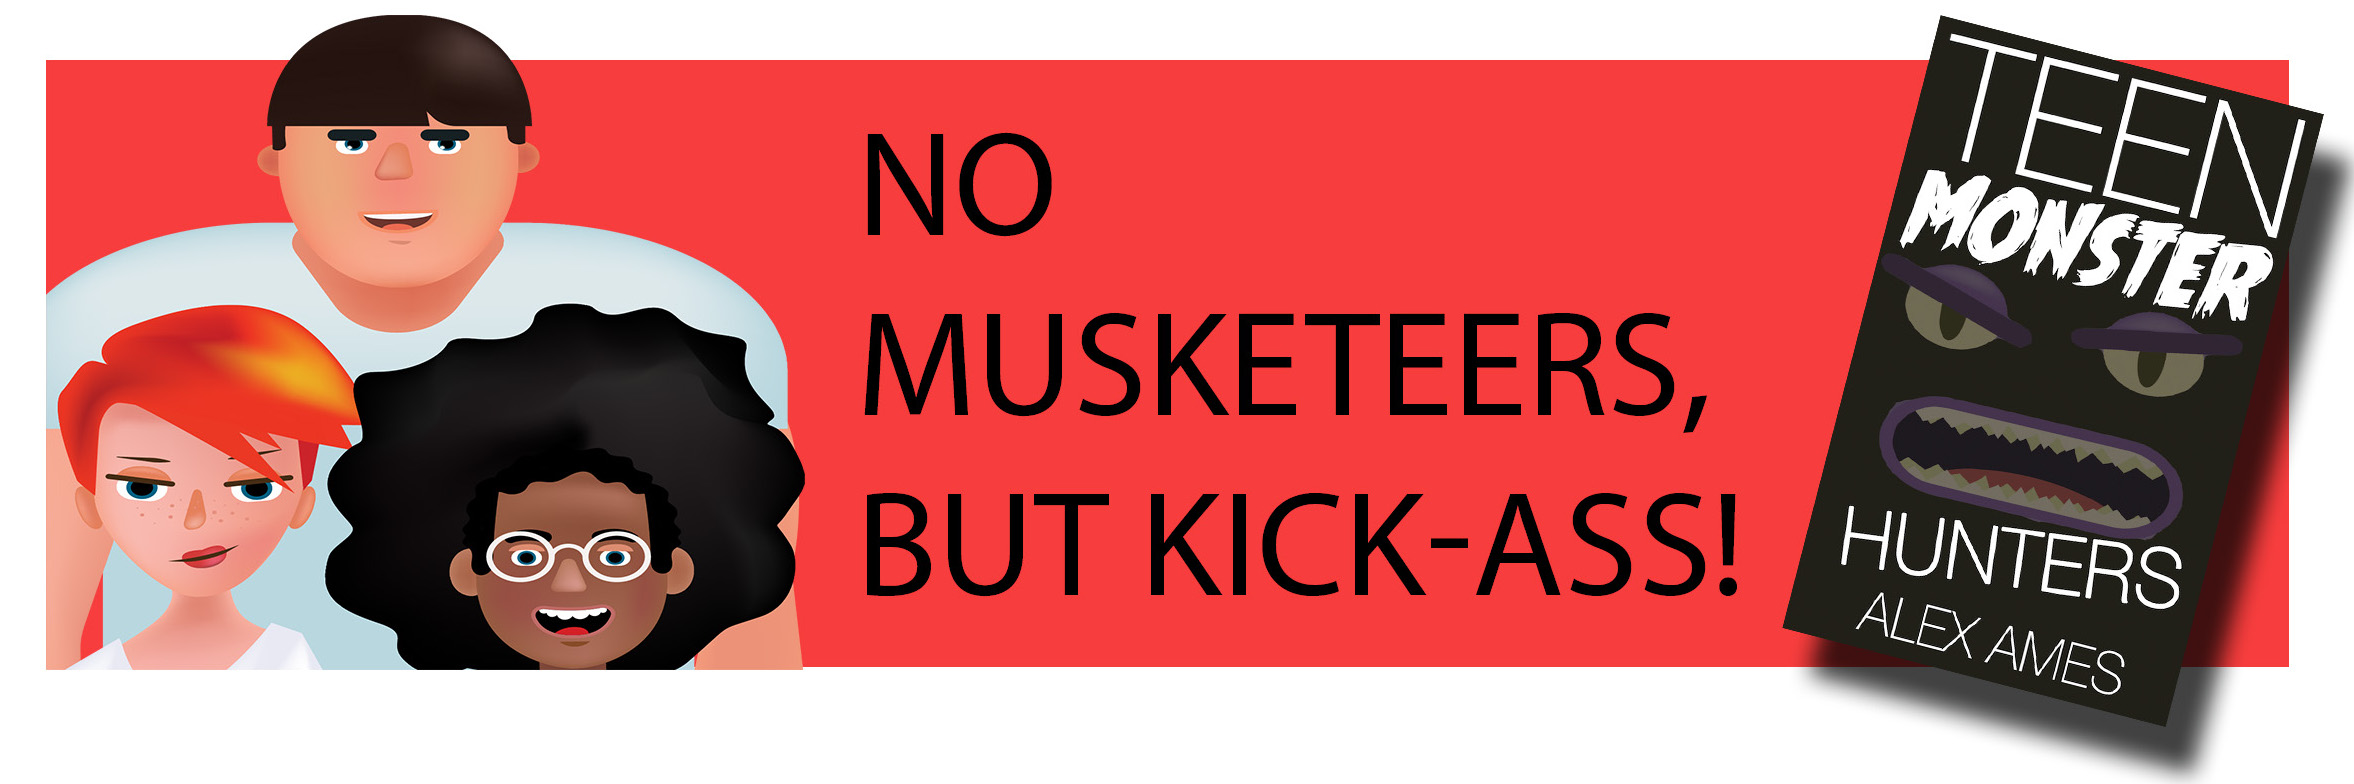 TMH No Musketeers But Kick-Ass!.jpg